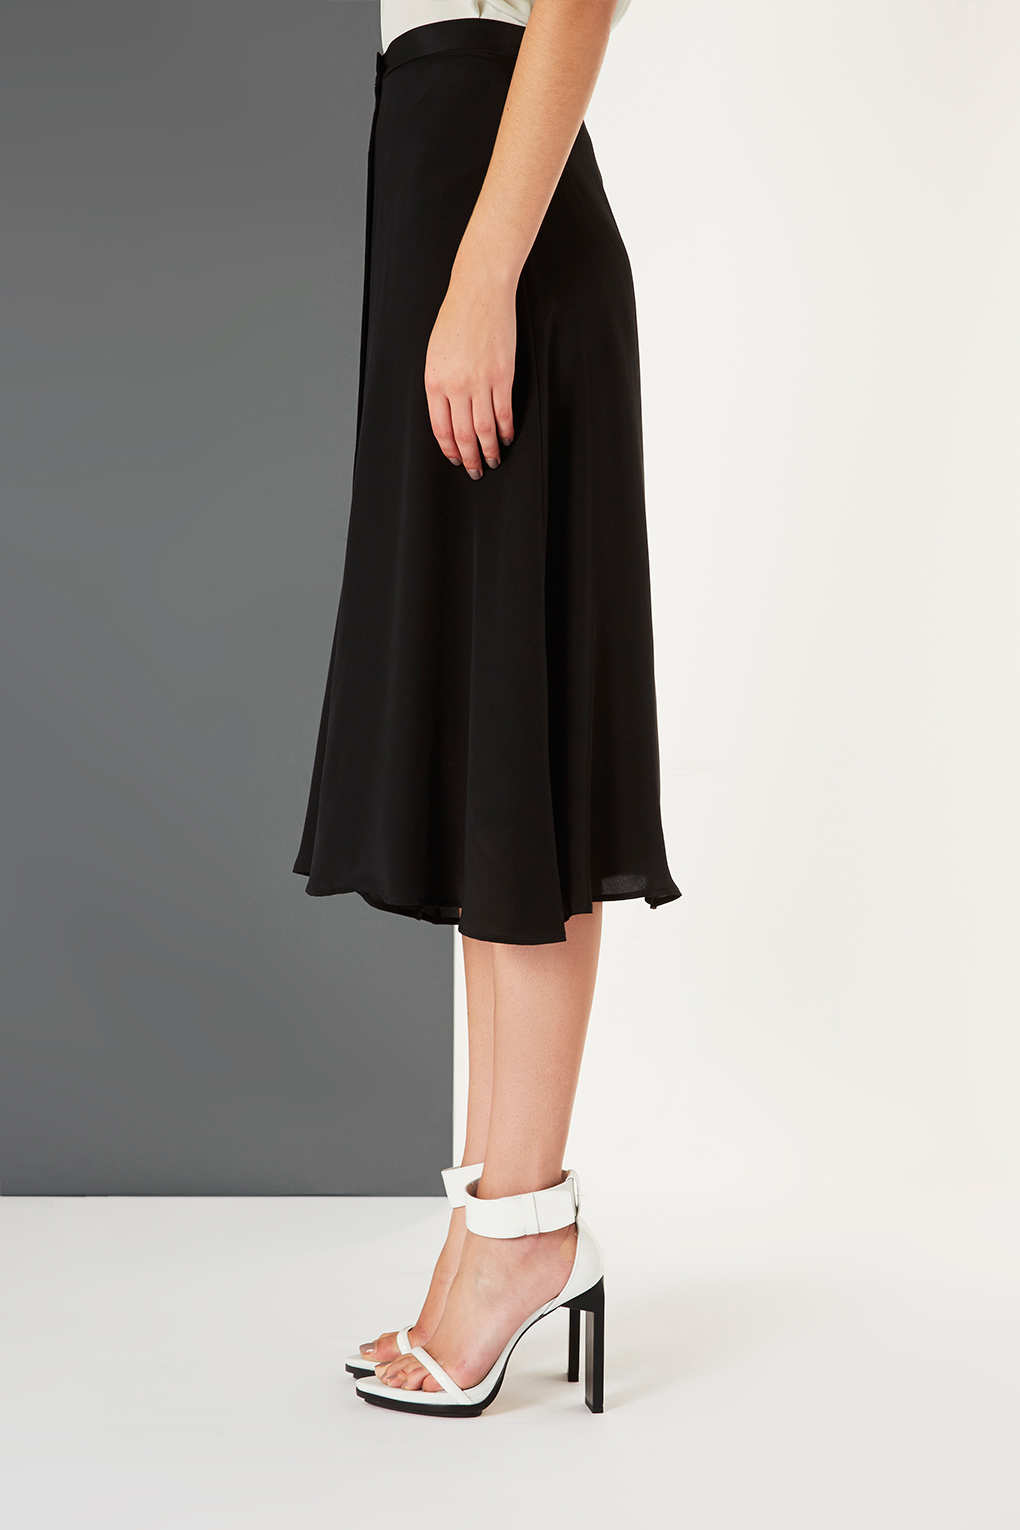 Topshop Silk Button Midi Skirt By Boutique in Black | Lyst